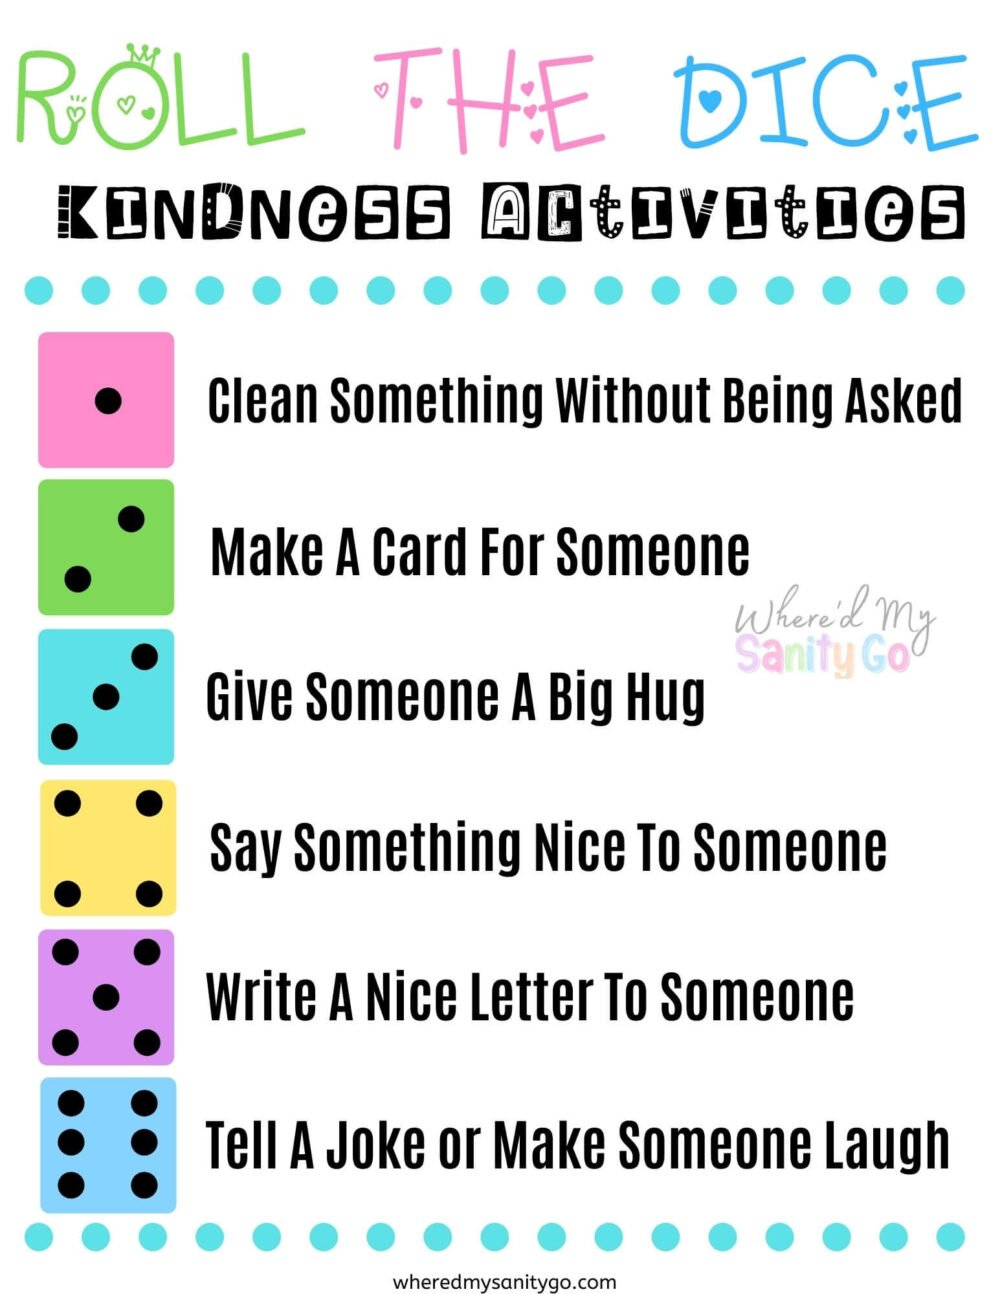 Roll the Dice Kindness Activities for Kids Printable